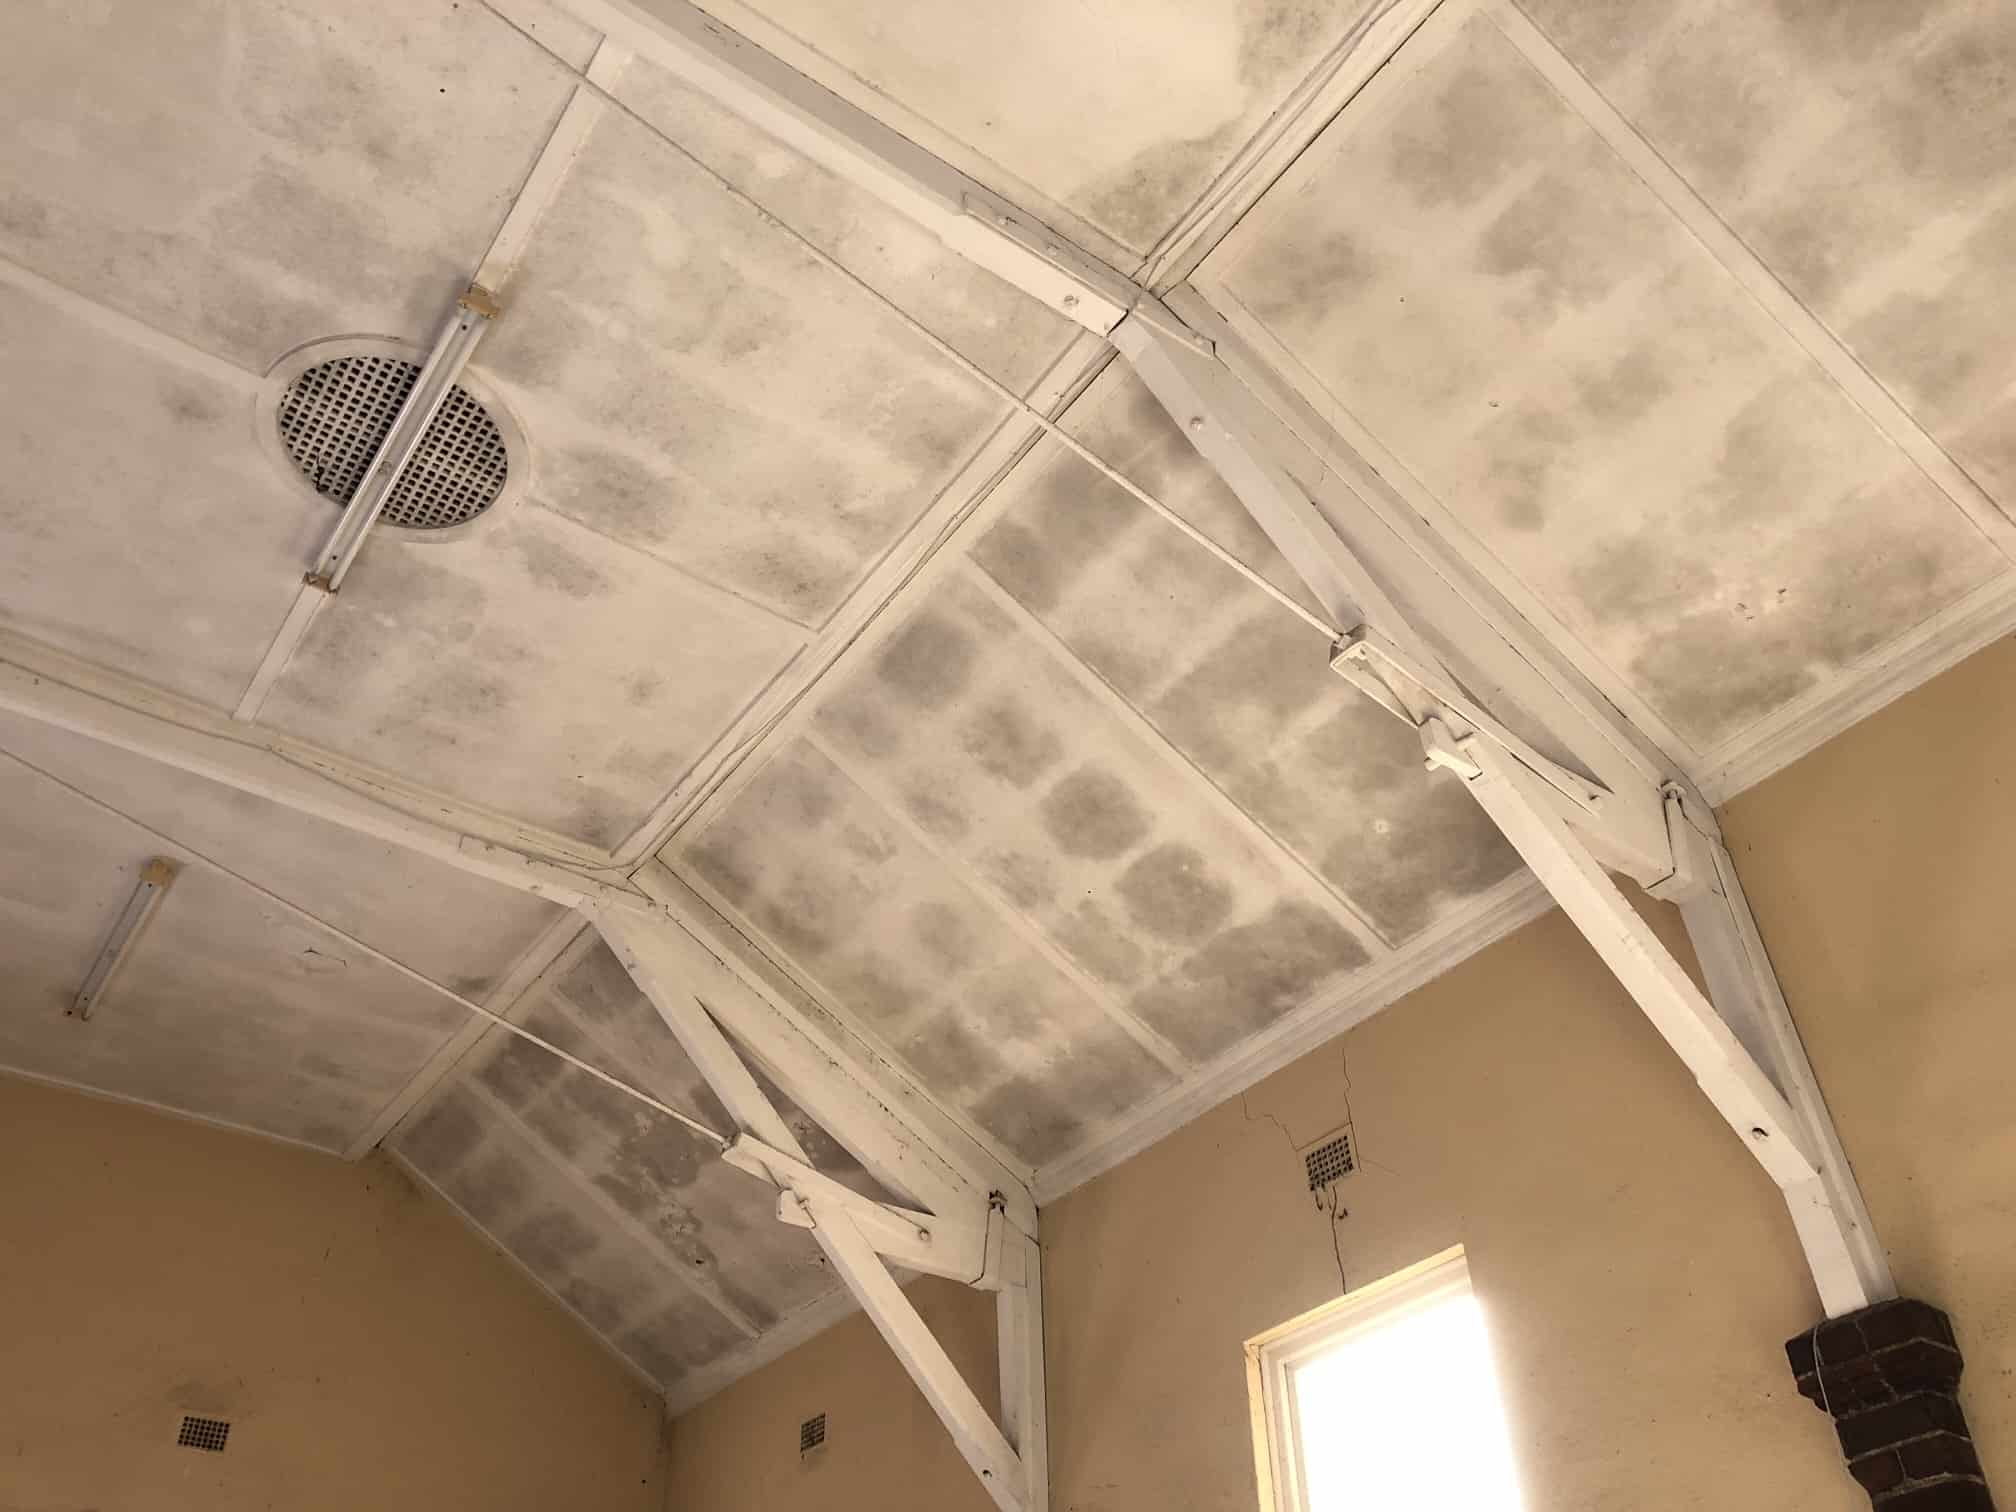 filthy black mould on ceiling